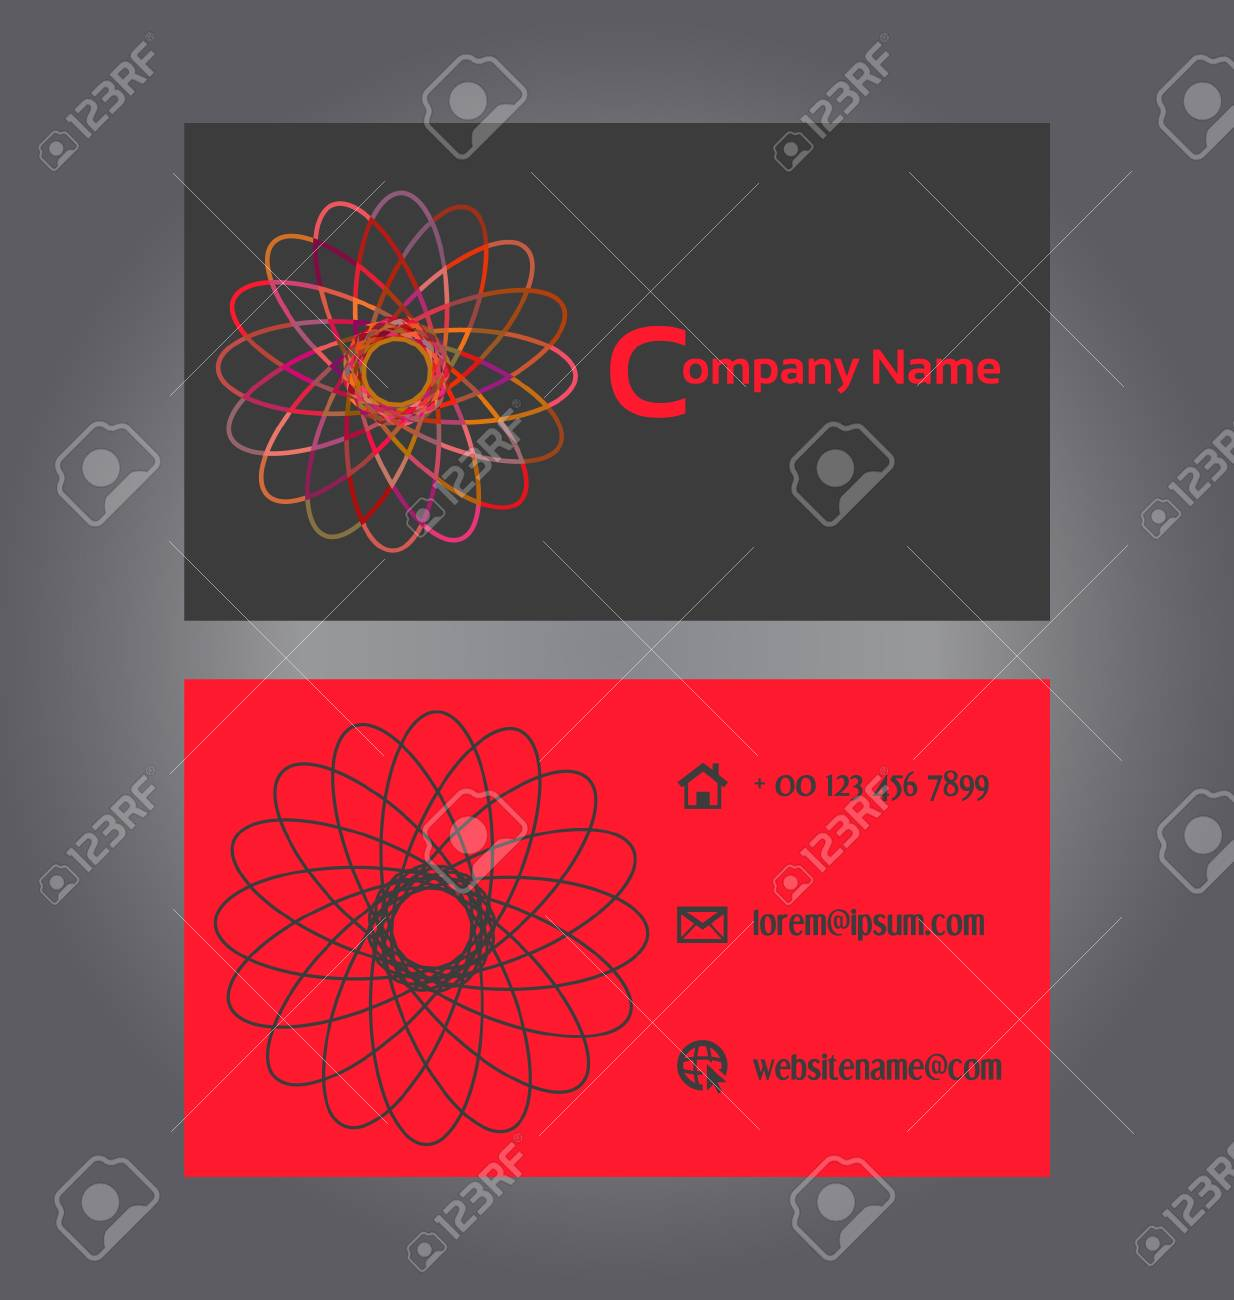 Two-sided Business Card Design Royalty Free Cliparts, Vectors, And ...